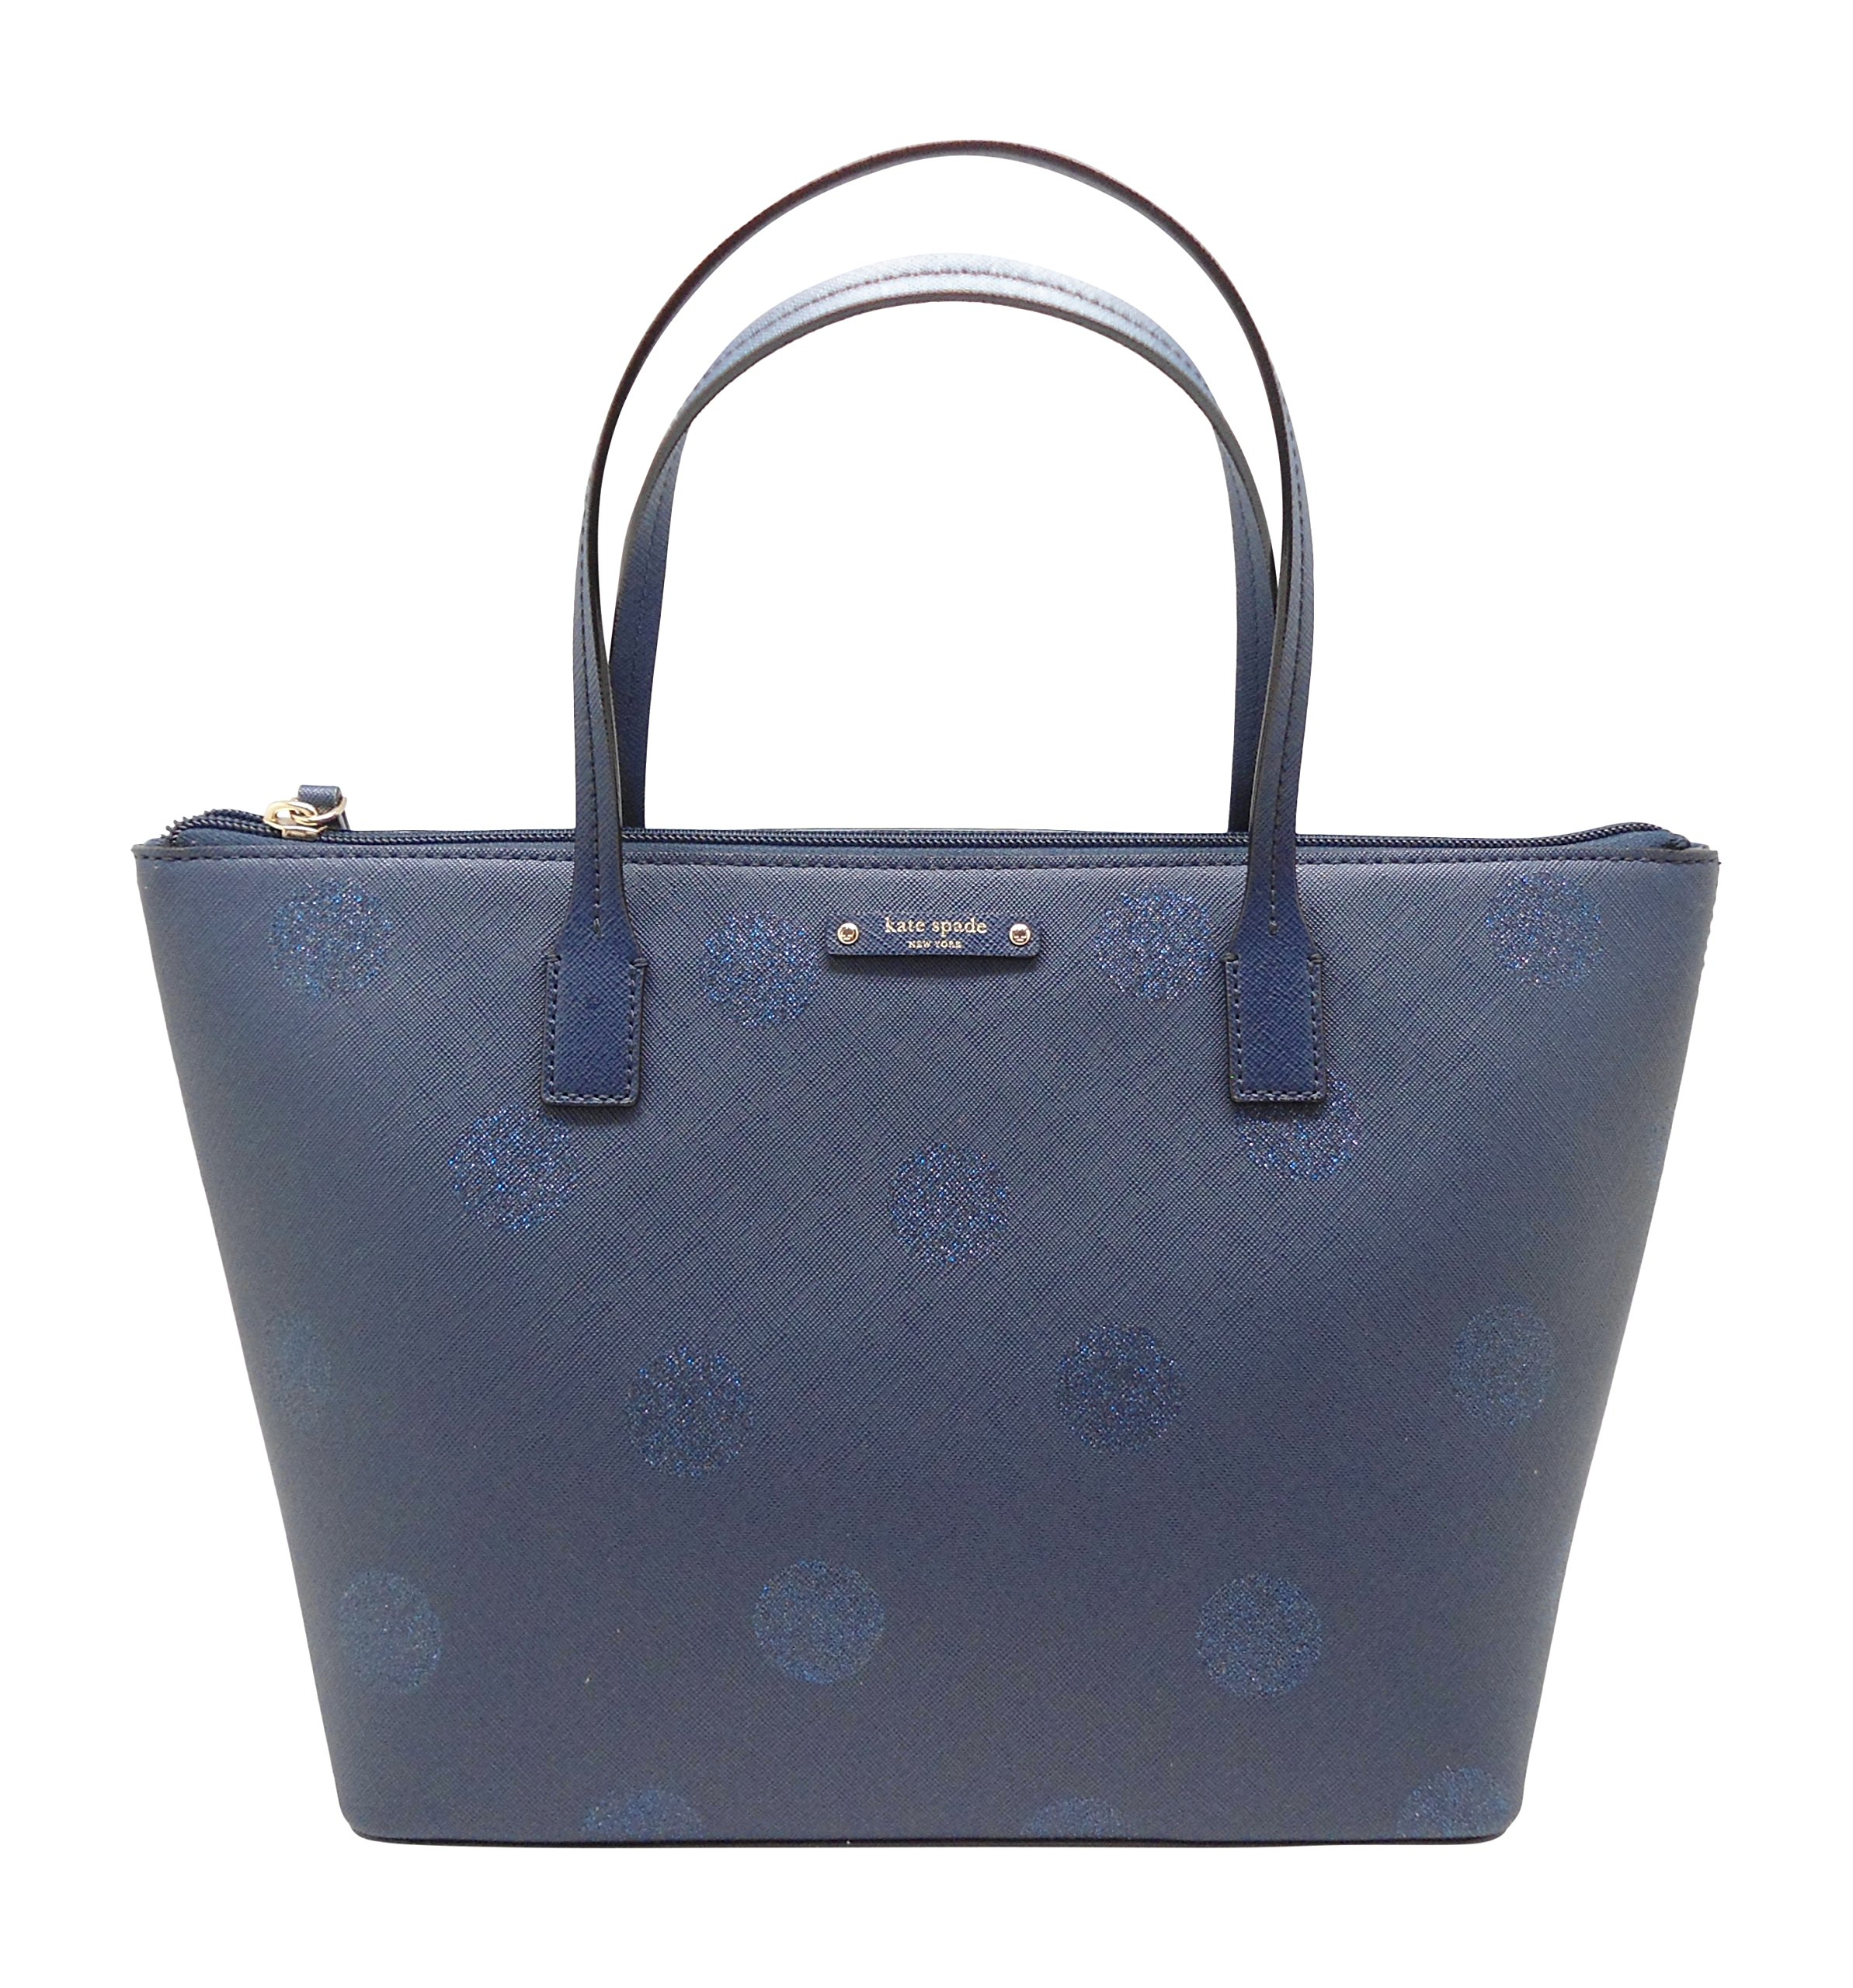 Kate Spade Hani Haven Lane Tote French Navy Glitter Polka Dot Handbag